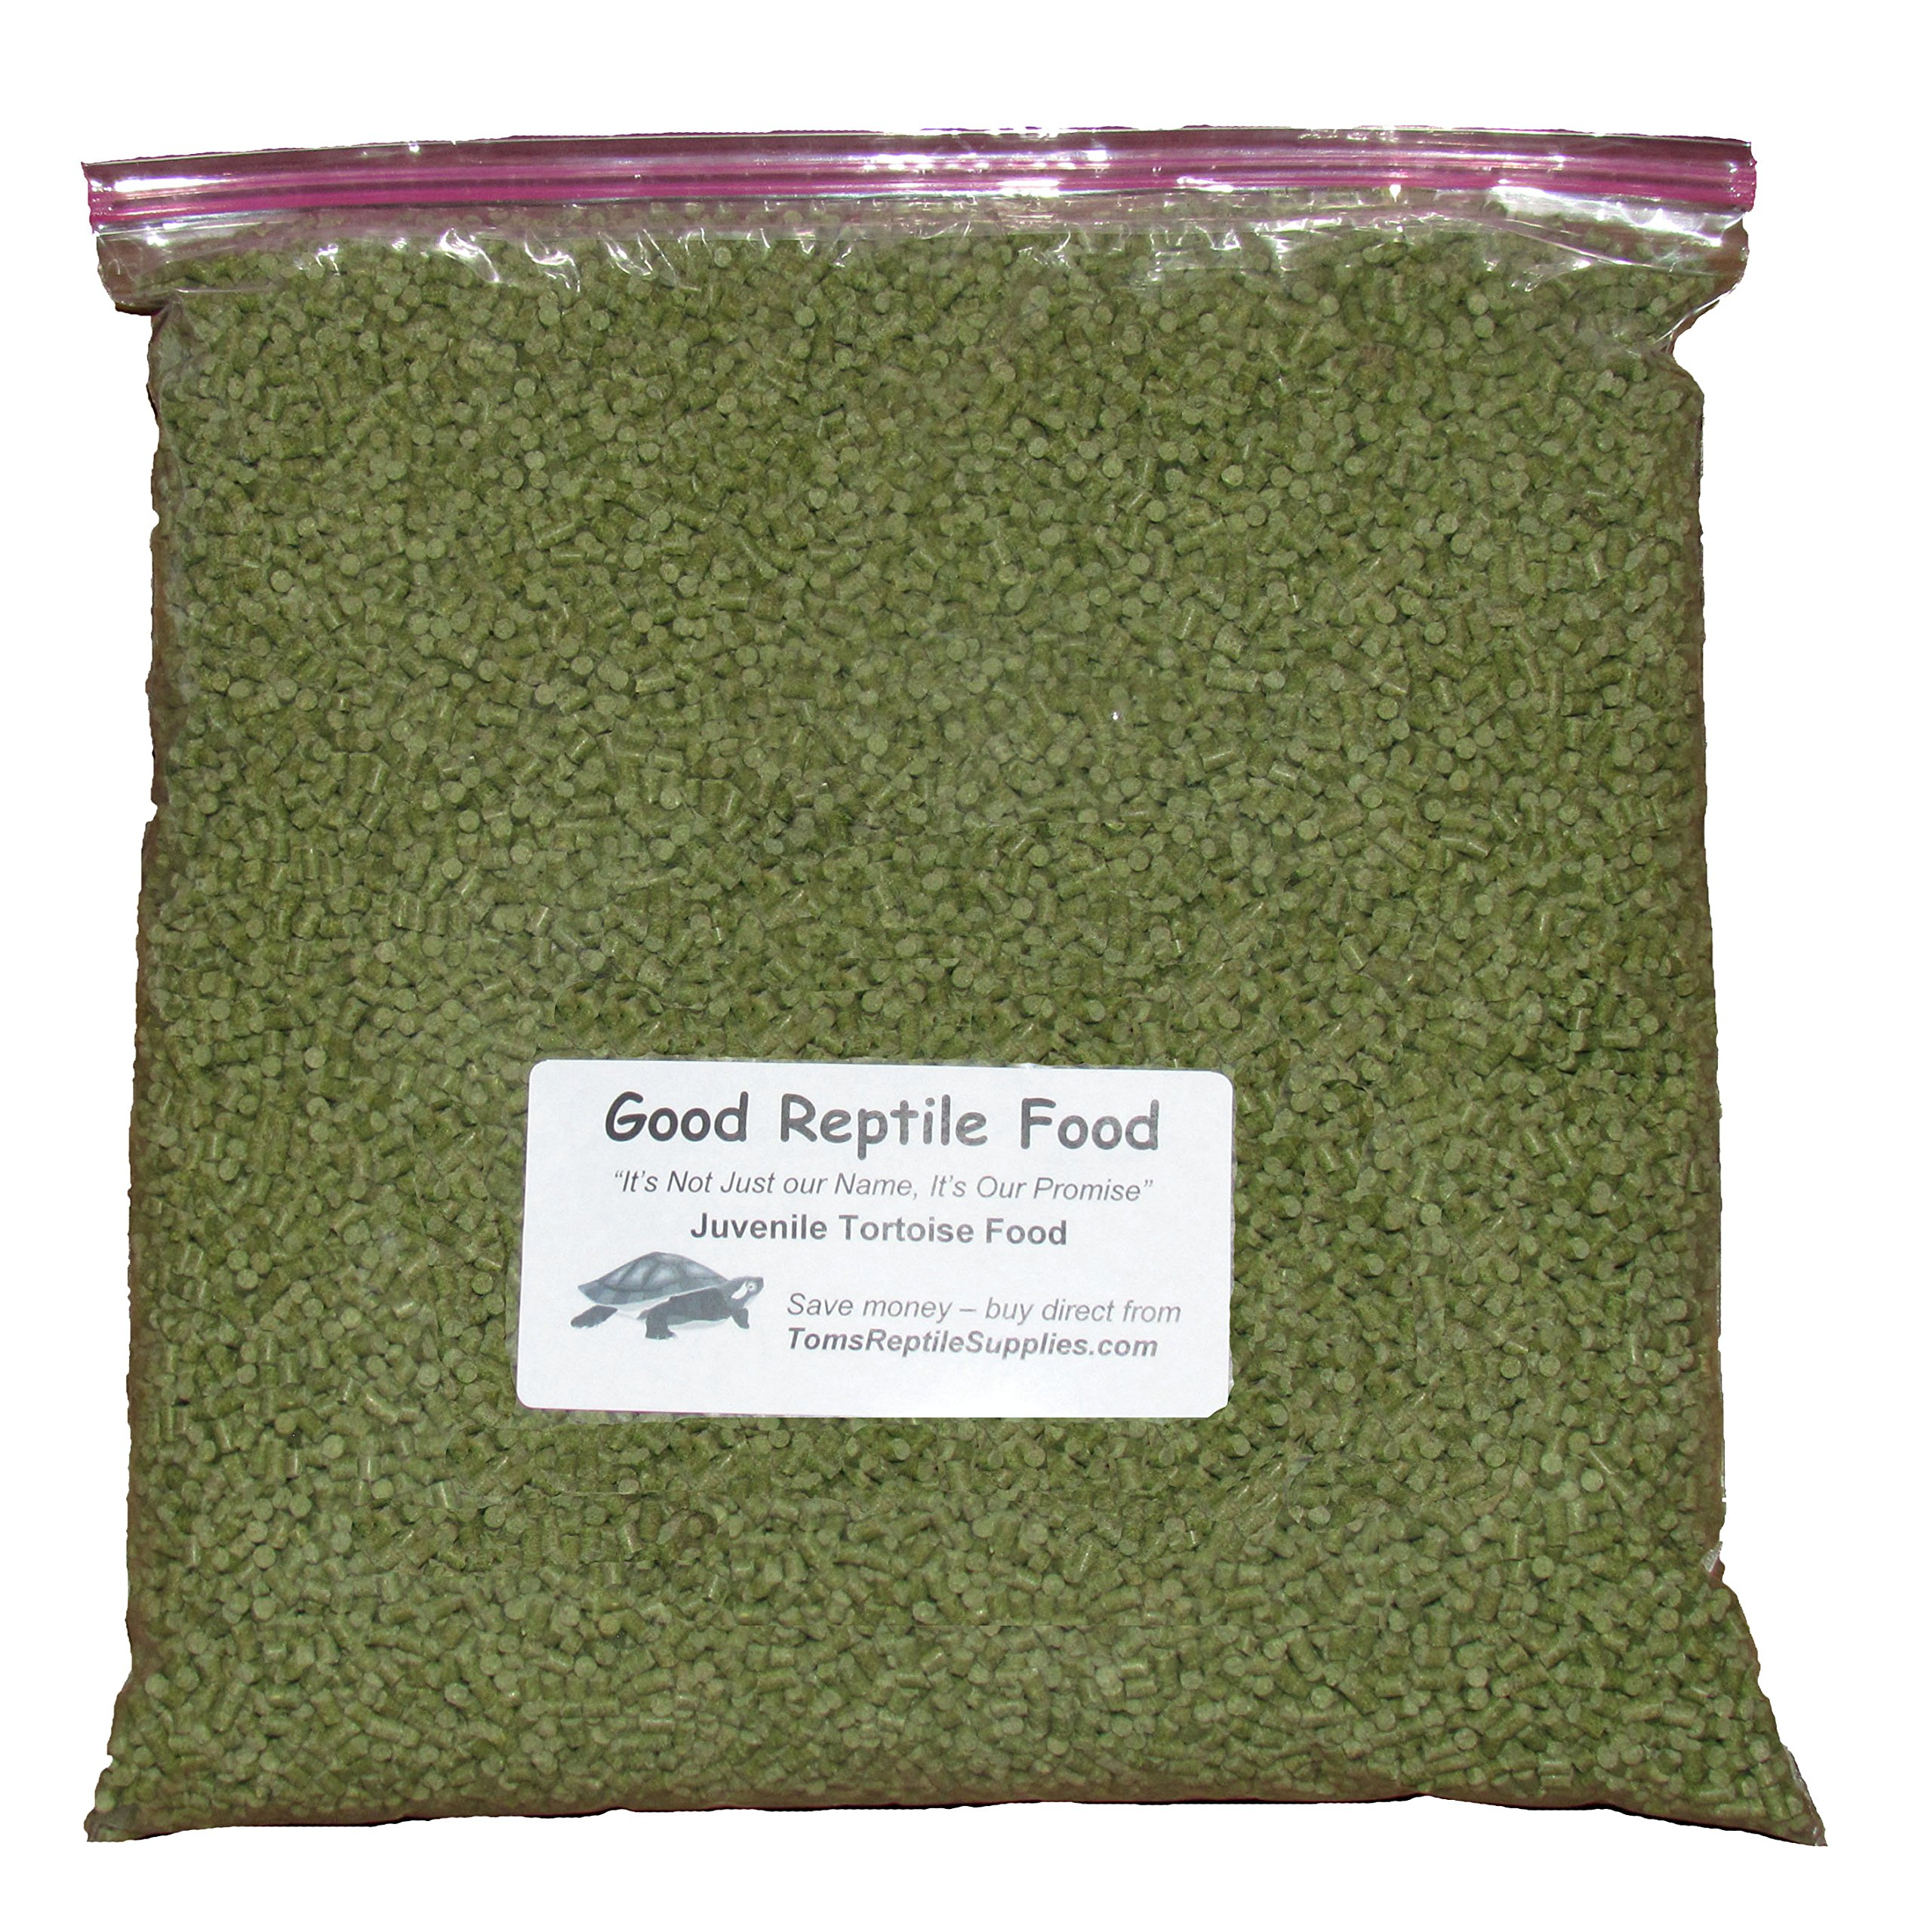 Juvenile Tortoise Food 4 LBS Bulk by Good Reptile Food